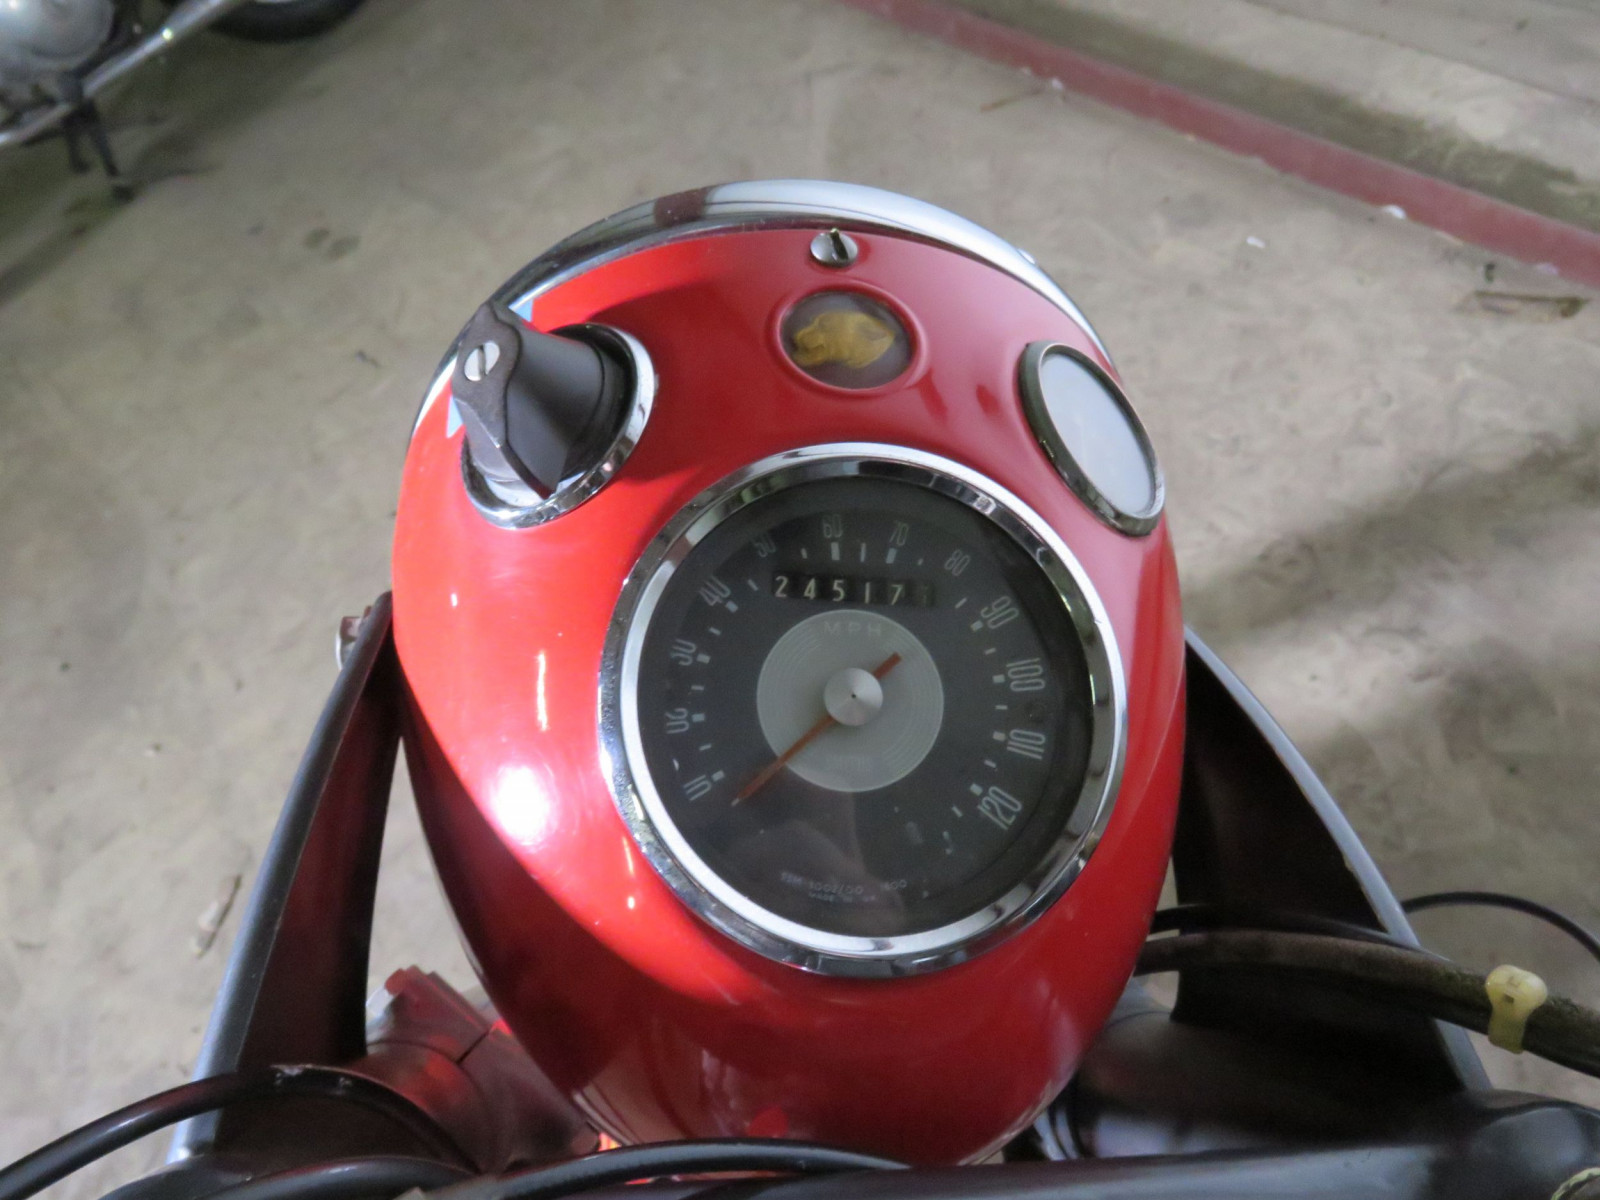 1965 Panther Model 120 Motorcycle - Image 3